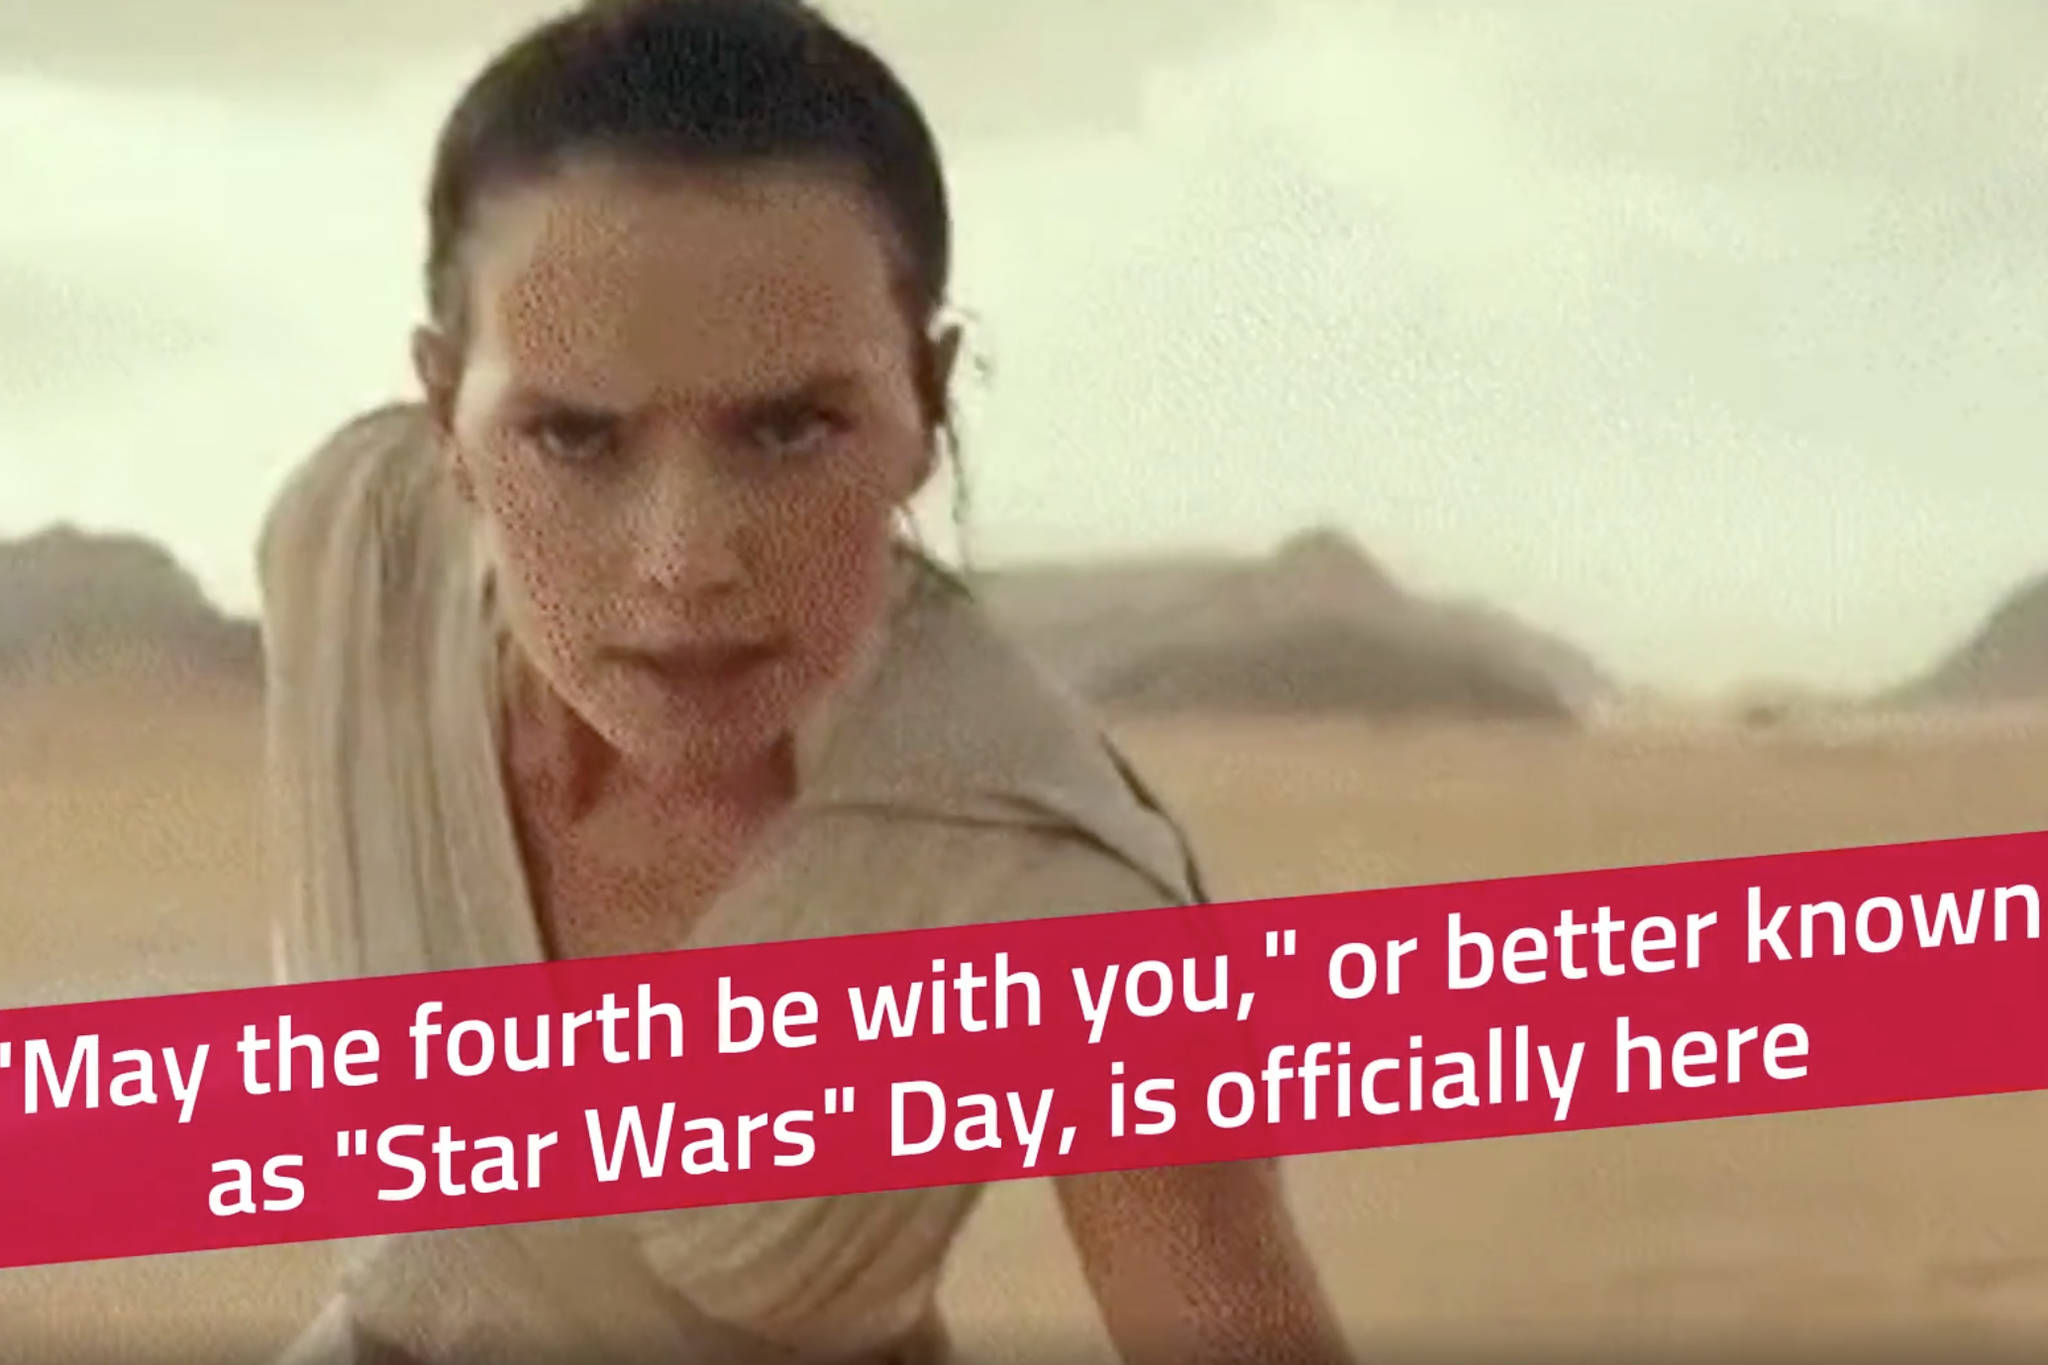 May the Fourth be with you: Celebrate with 10 Star Wars facts you might not know